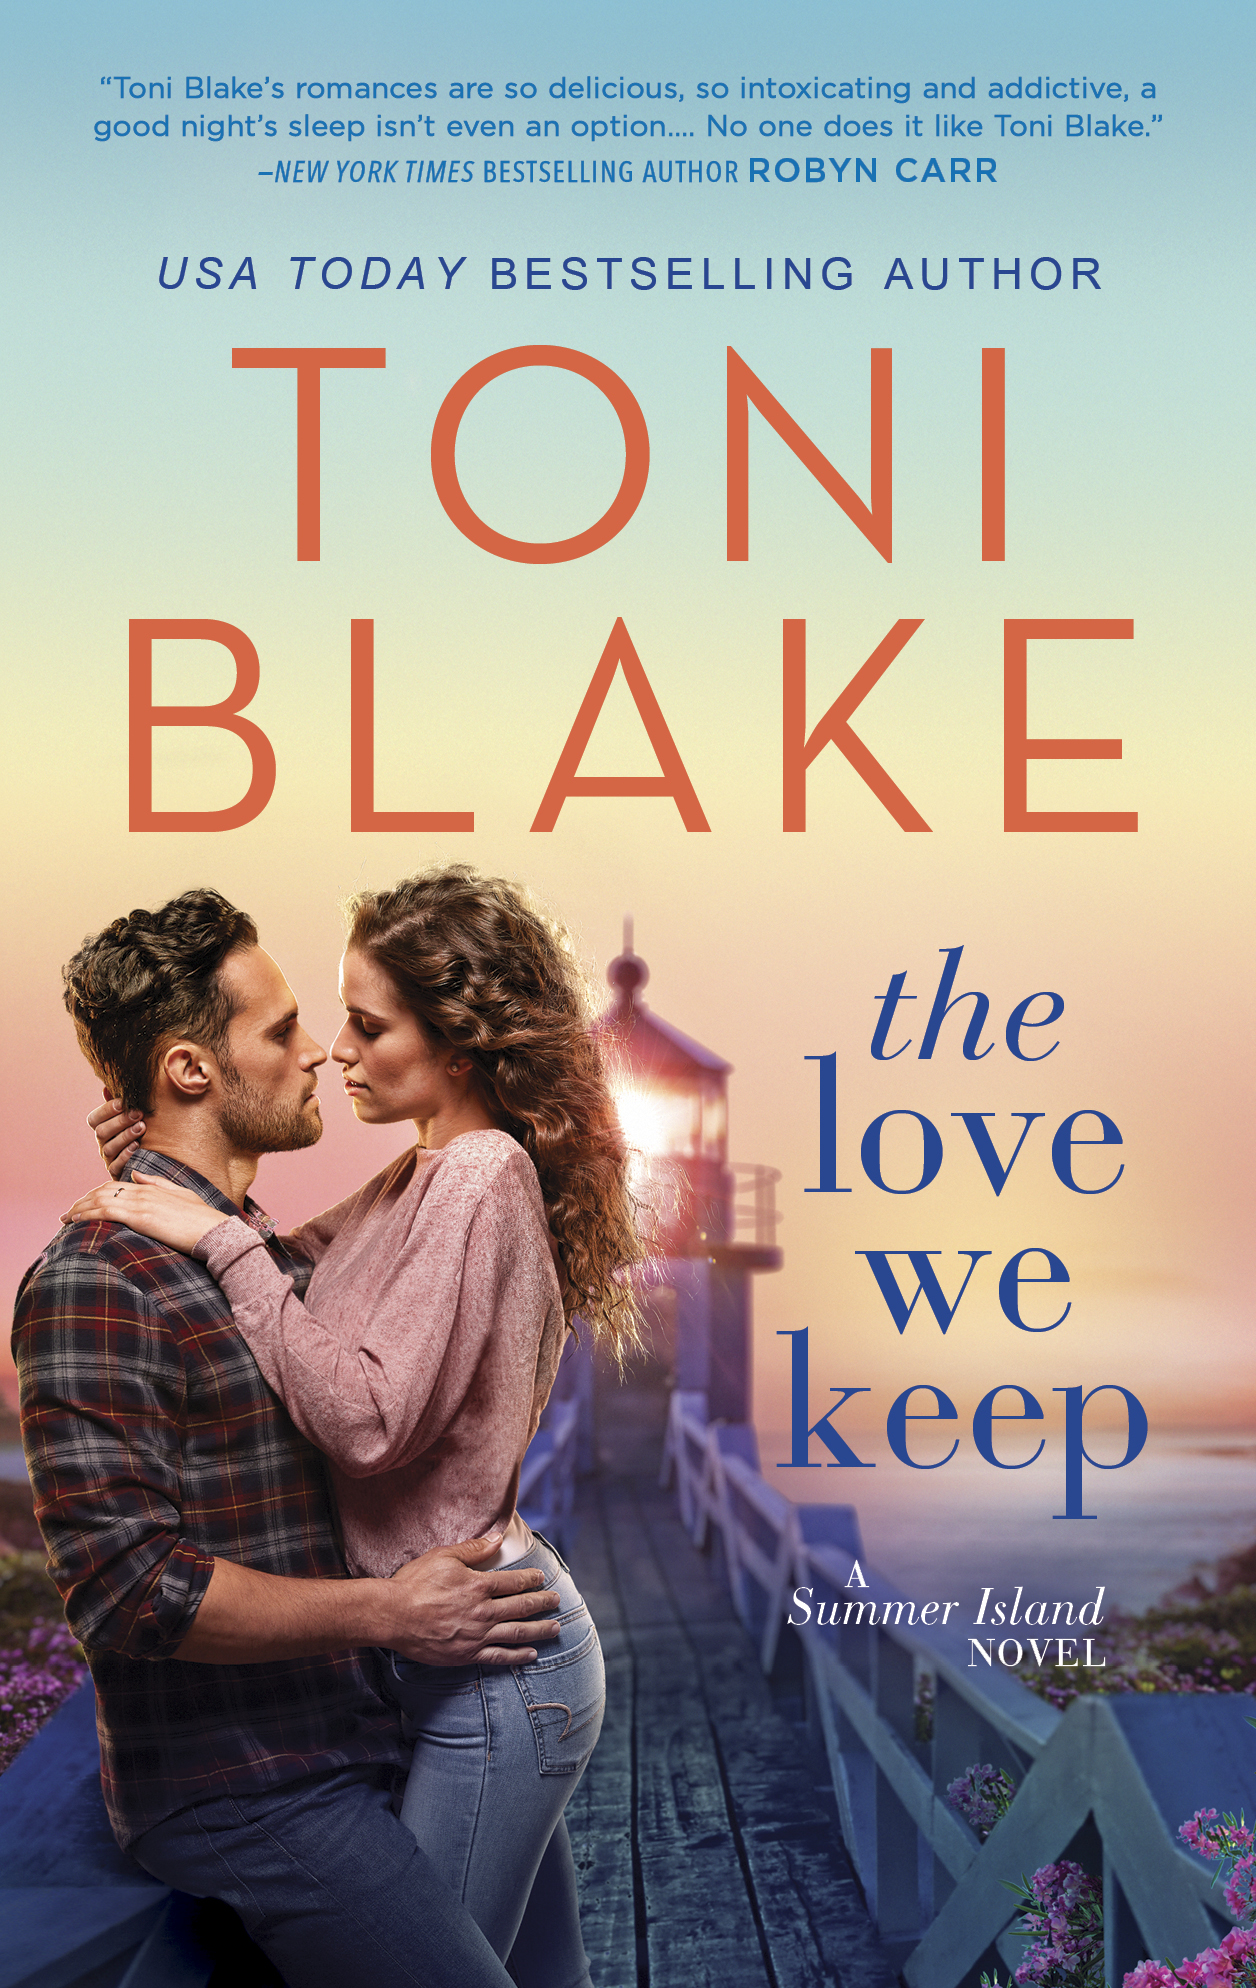 The Love We Keep A Summer Island Novel, Book 3 January 28, 2020